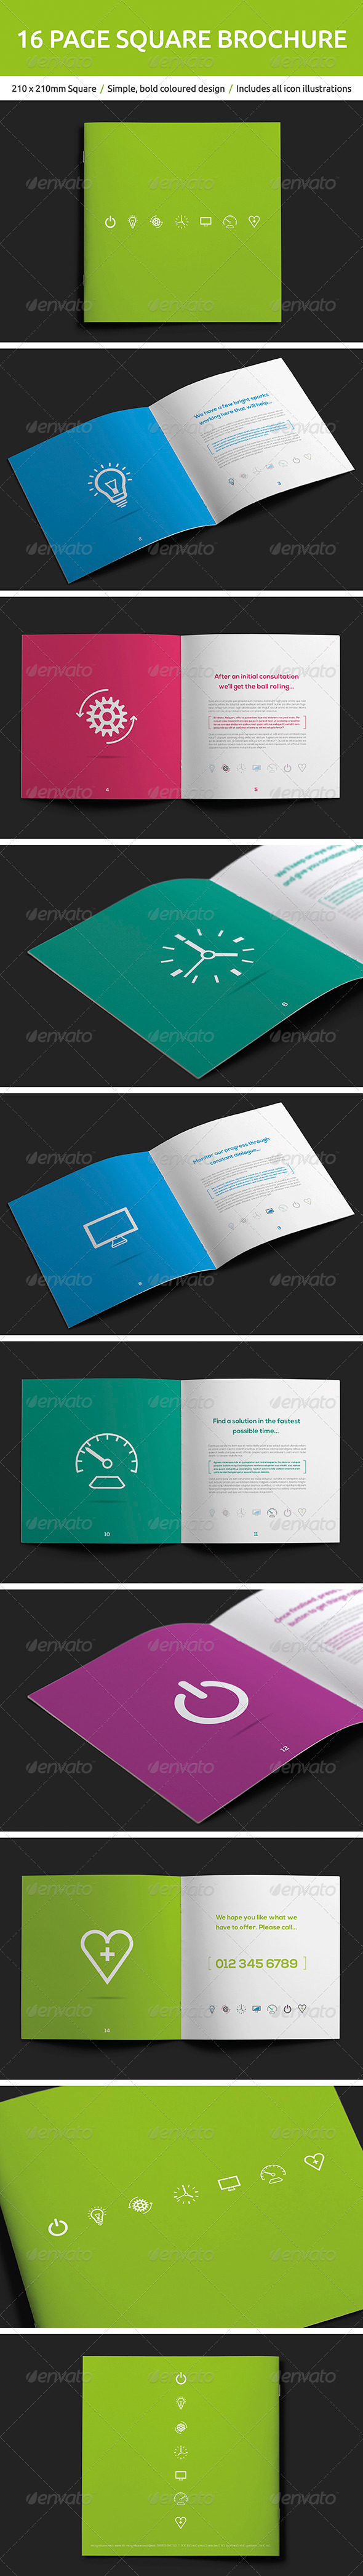 GraphicRiver 16 Page Square Brochure 5211838